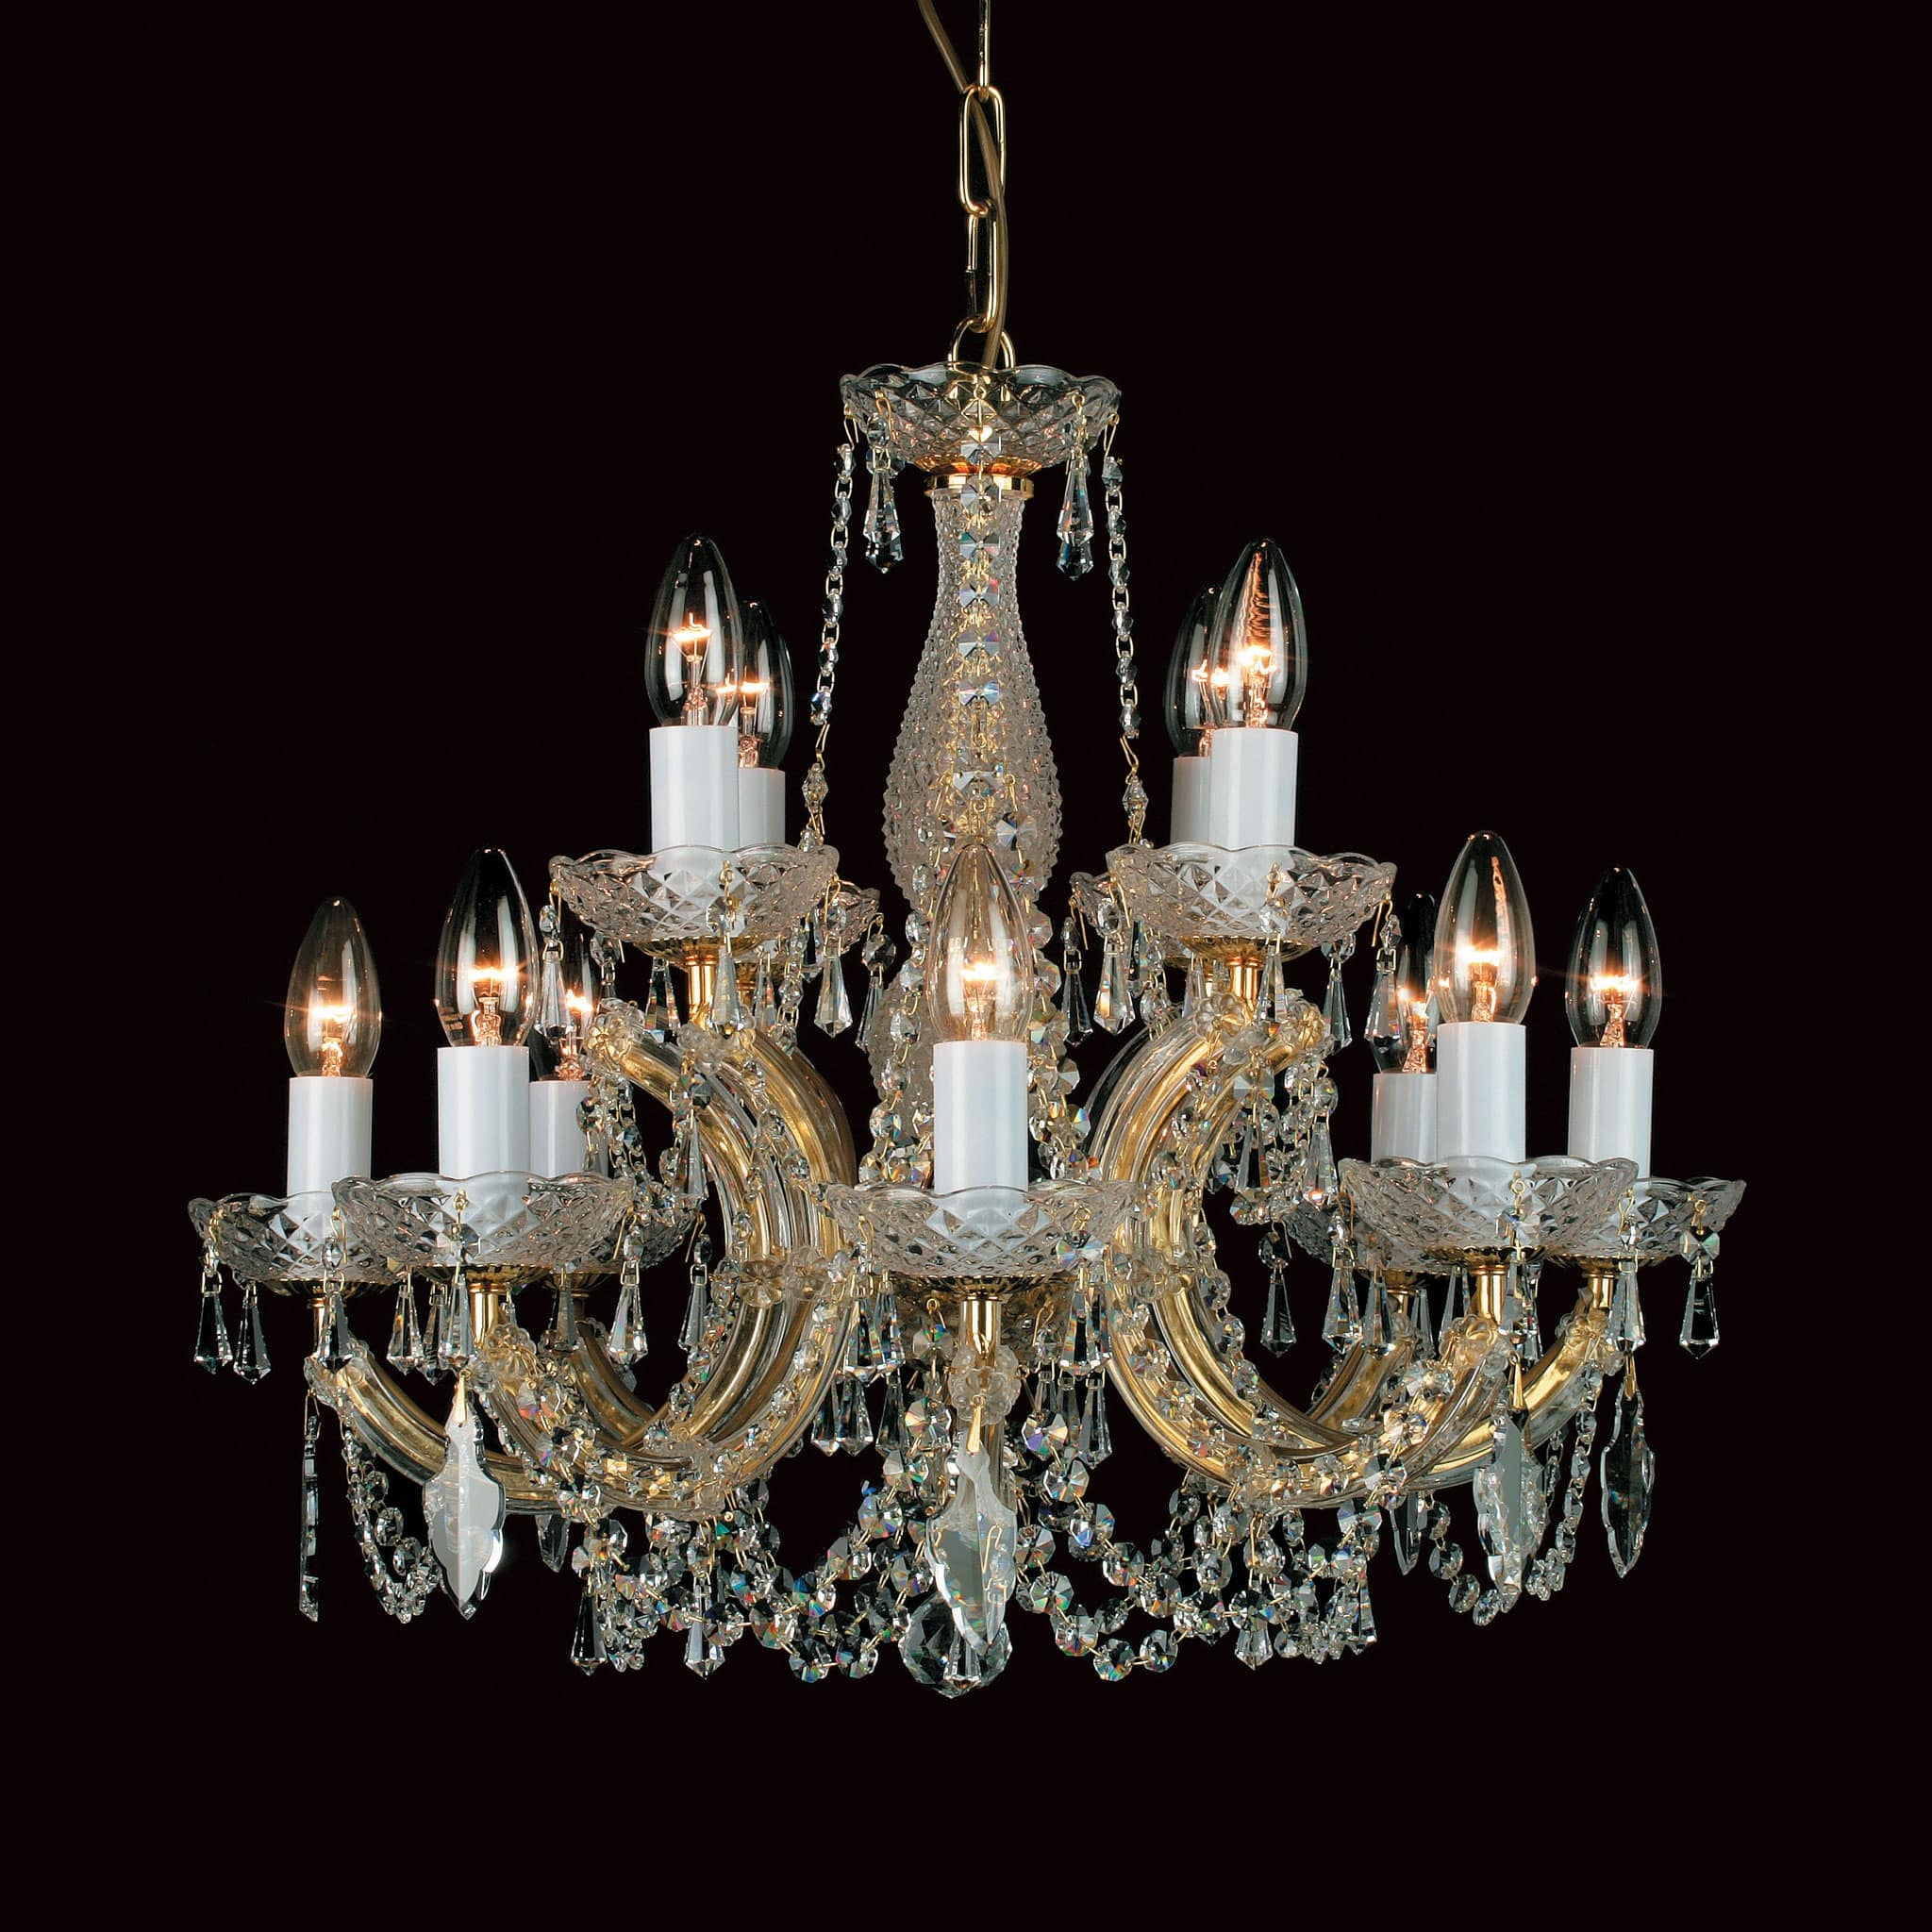 Impex marie therese 12 light gold crystal chandelier chandelier impex marie therese 12 light gold crystal chandelier cp0015084g aloadofball Gallery